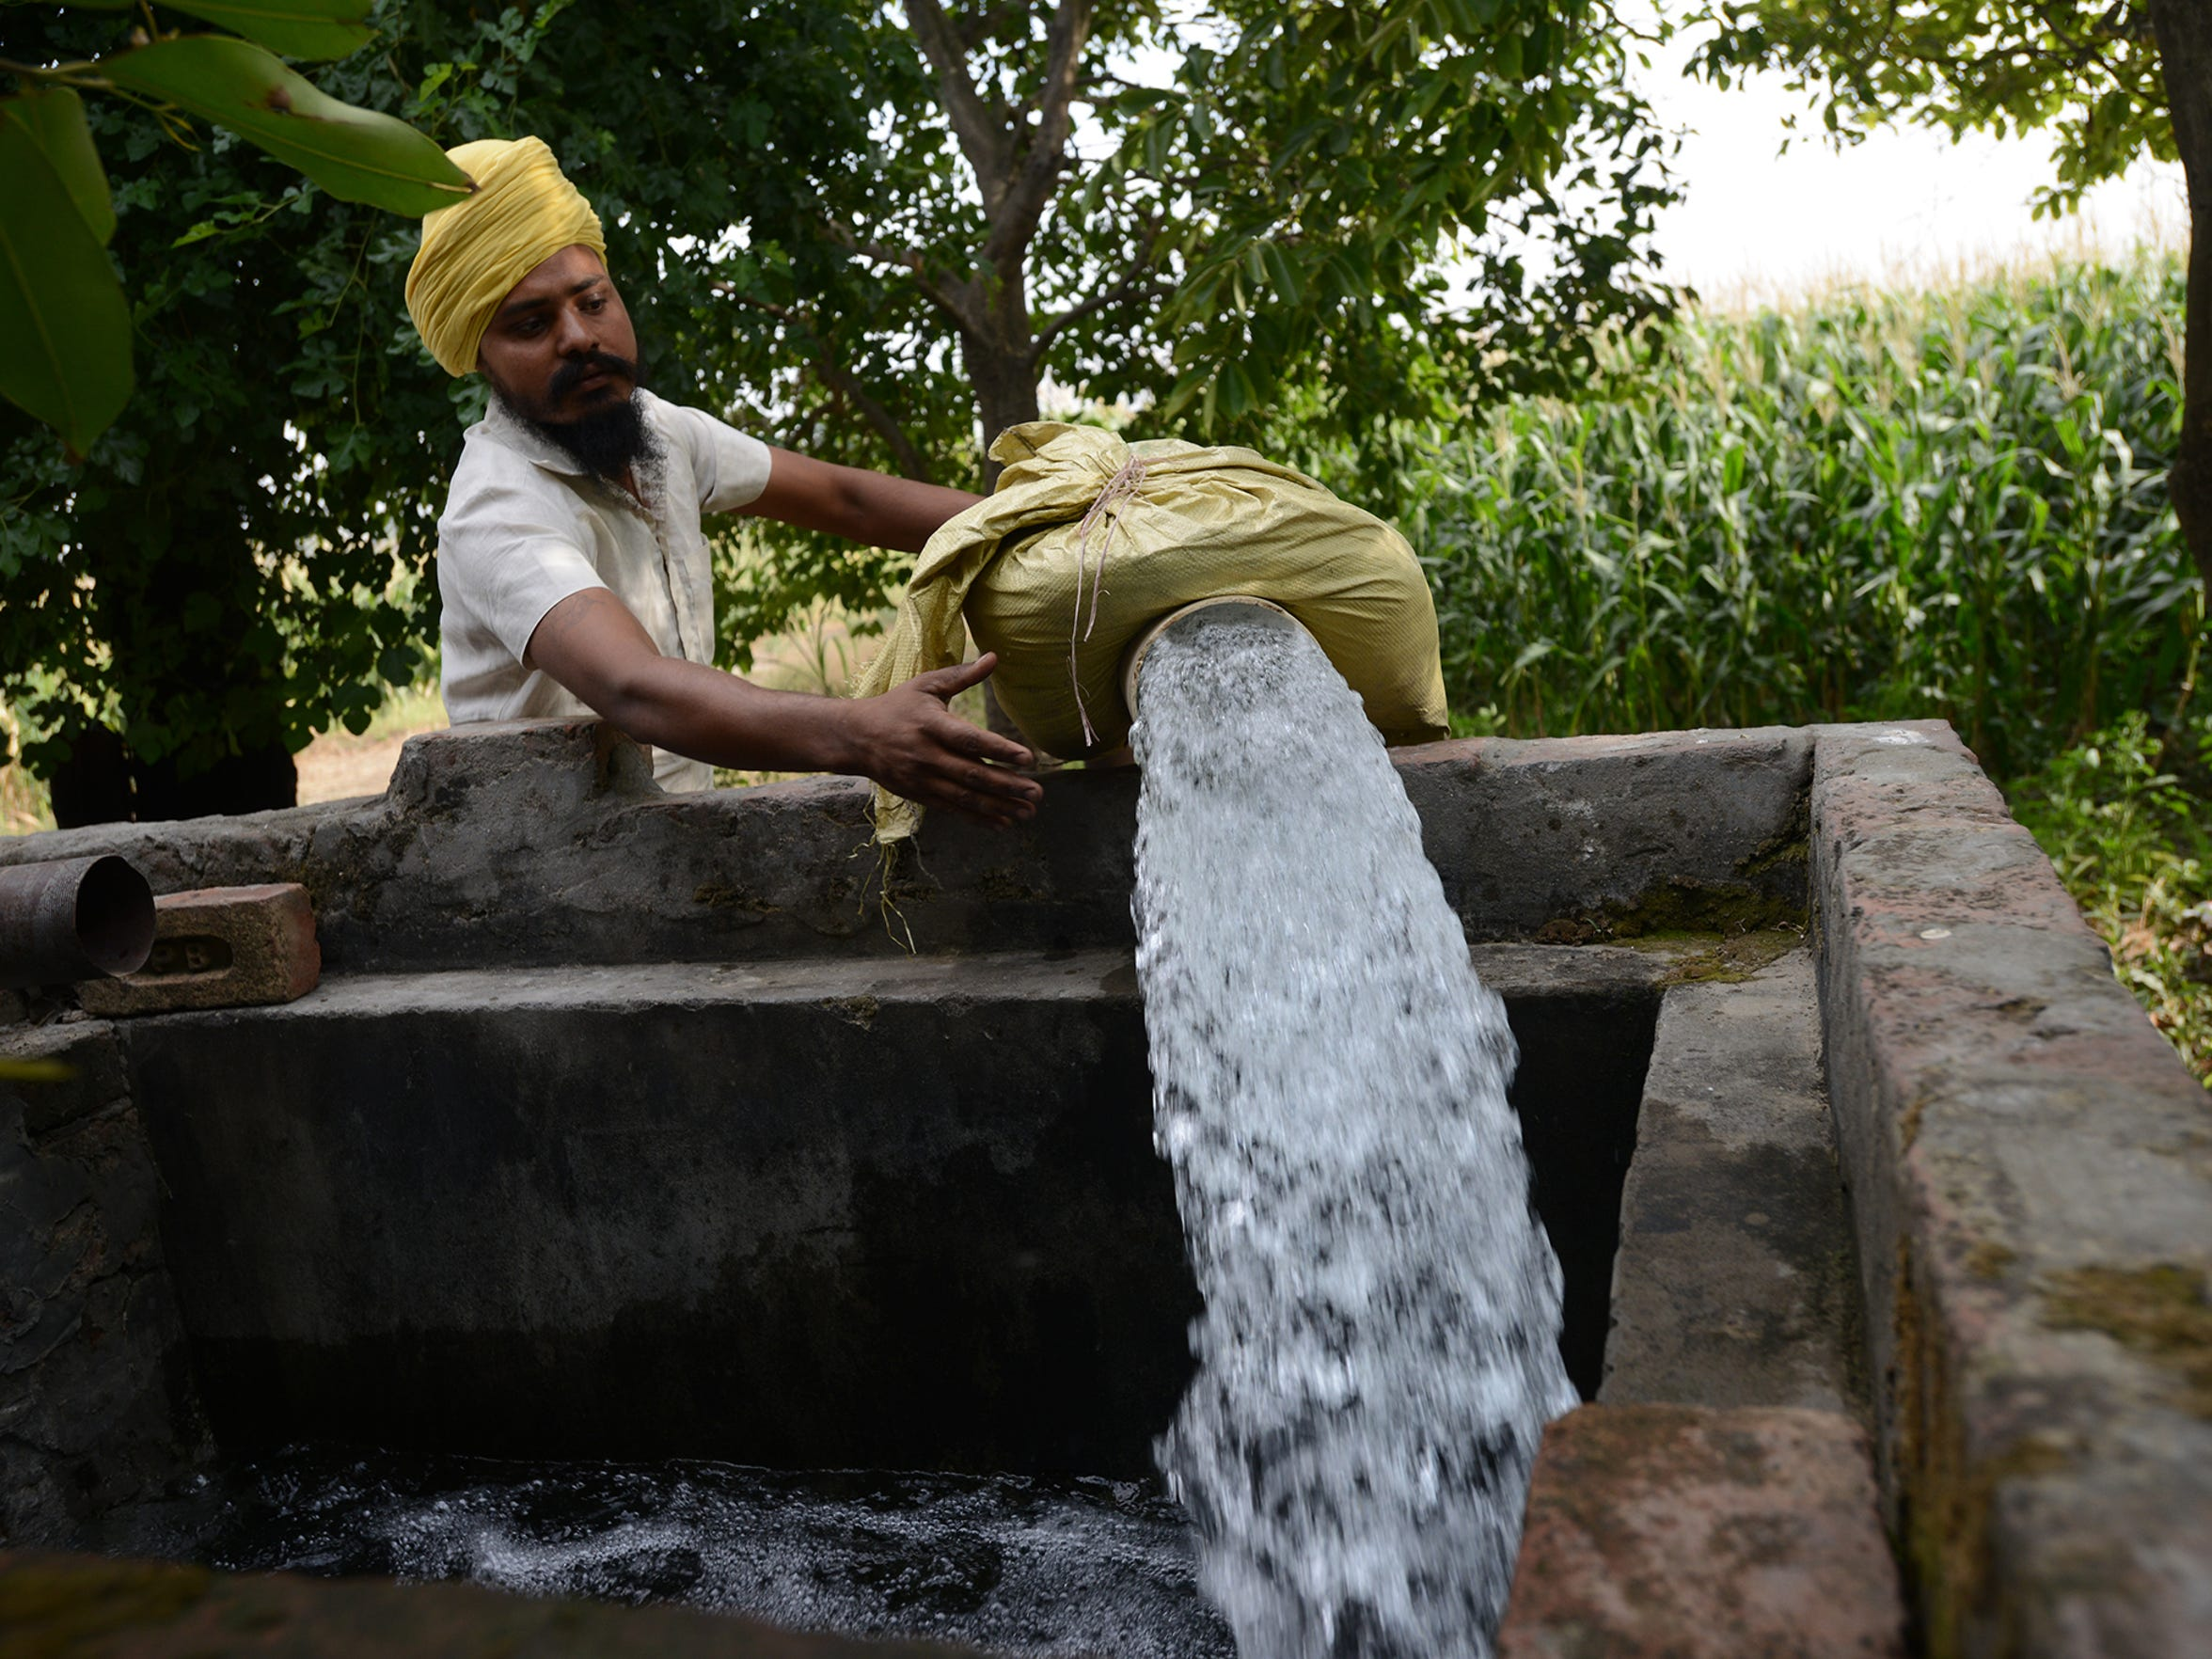 Kulwinder Singh Sanghera checks on one of the wells on his 20-acre farm in the state of Punjab in northern India. He is the third generation of his family to farm this land.